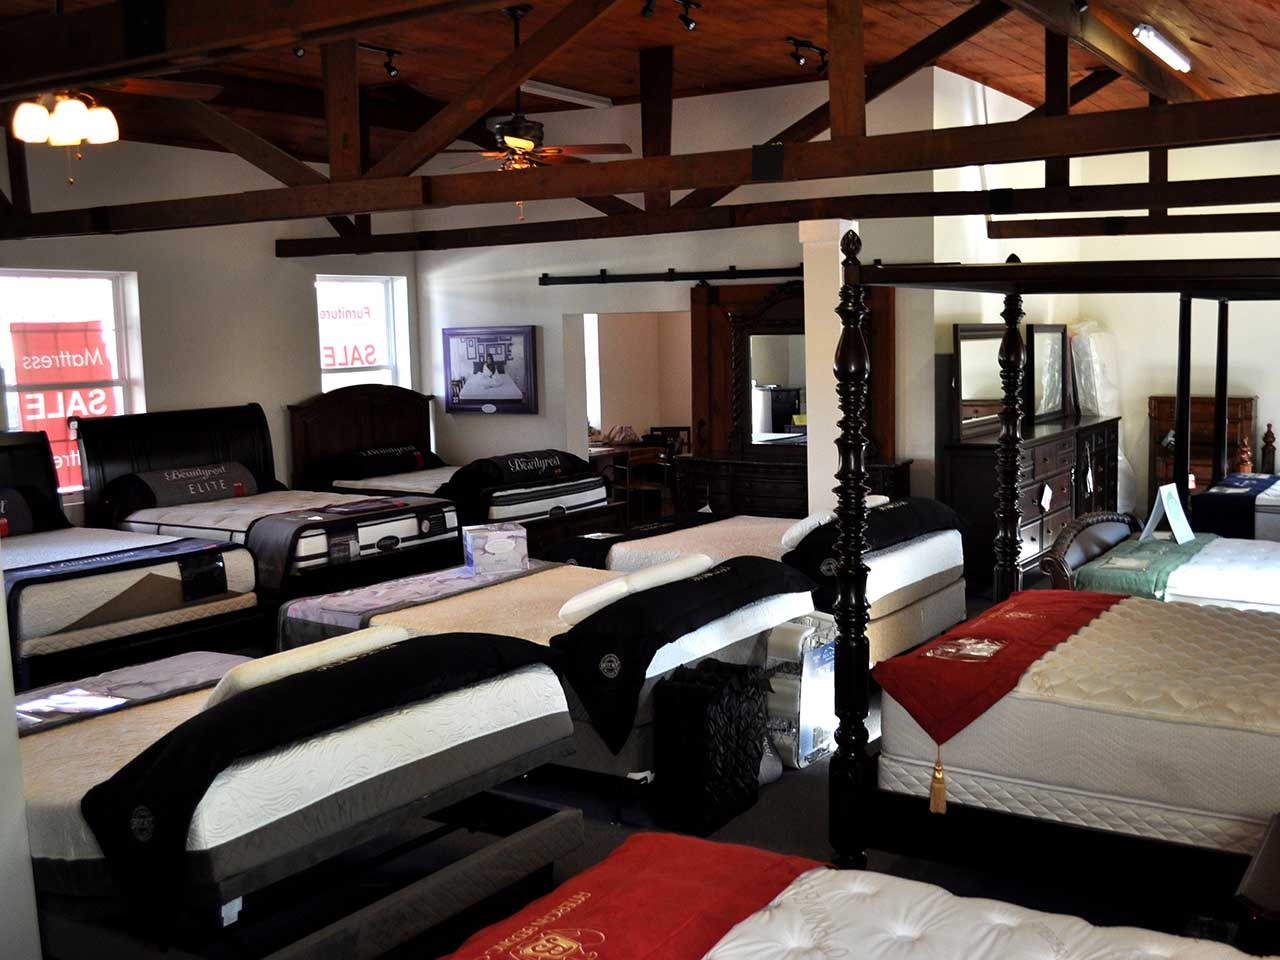 Photo of the beds and mattresses inventory inside SOS Mattress.